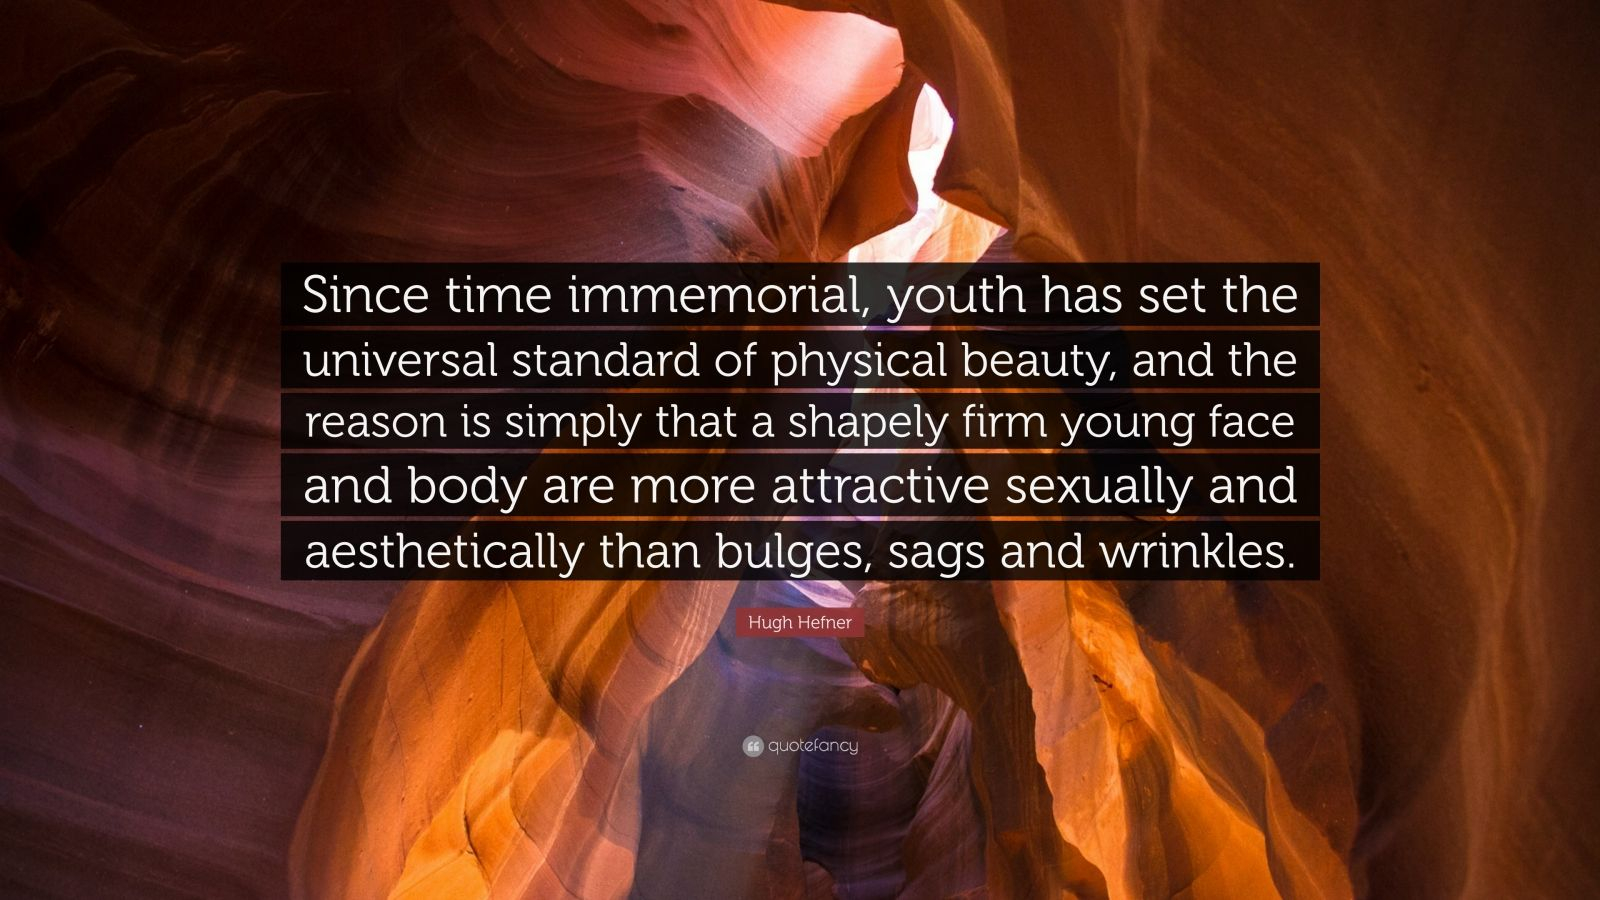 """Hugh Hefner Quote: """"Since time immemorial, youth has set the universal standard of physical beauty, and the reason is simply that a shapely firm young face and body are more attractive sexually and aesthetically than bulges, sags and wrinkles."""""""